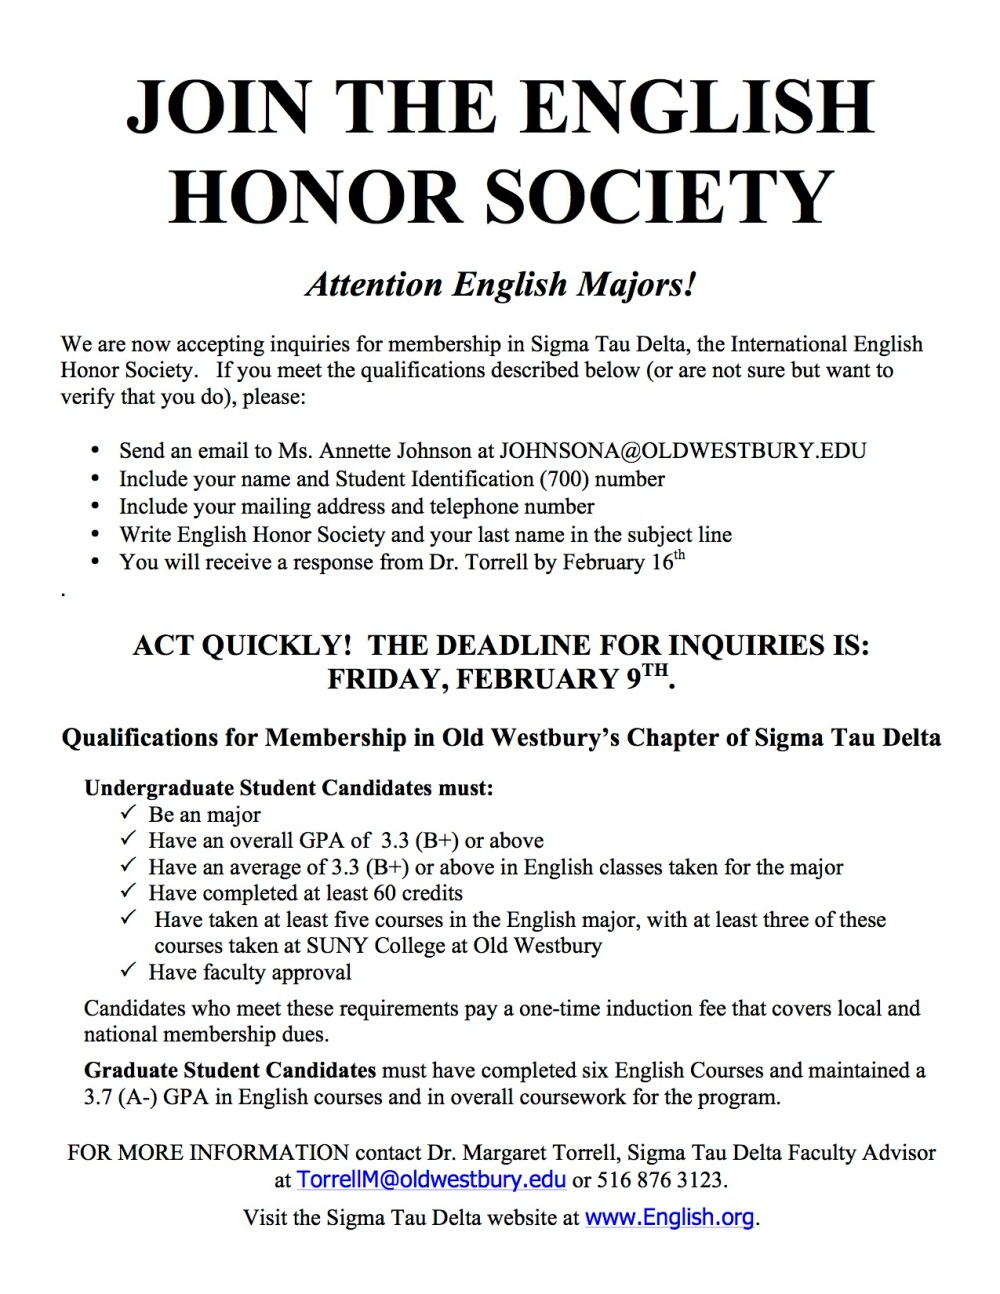 ENGLISH HONOR SOCIETY SPRING 2018